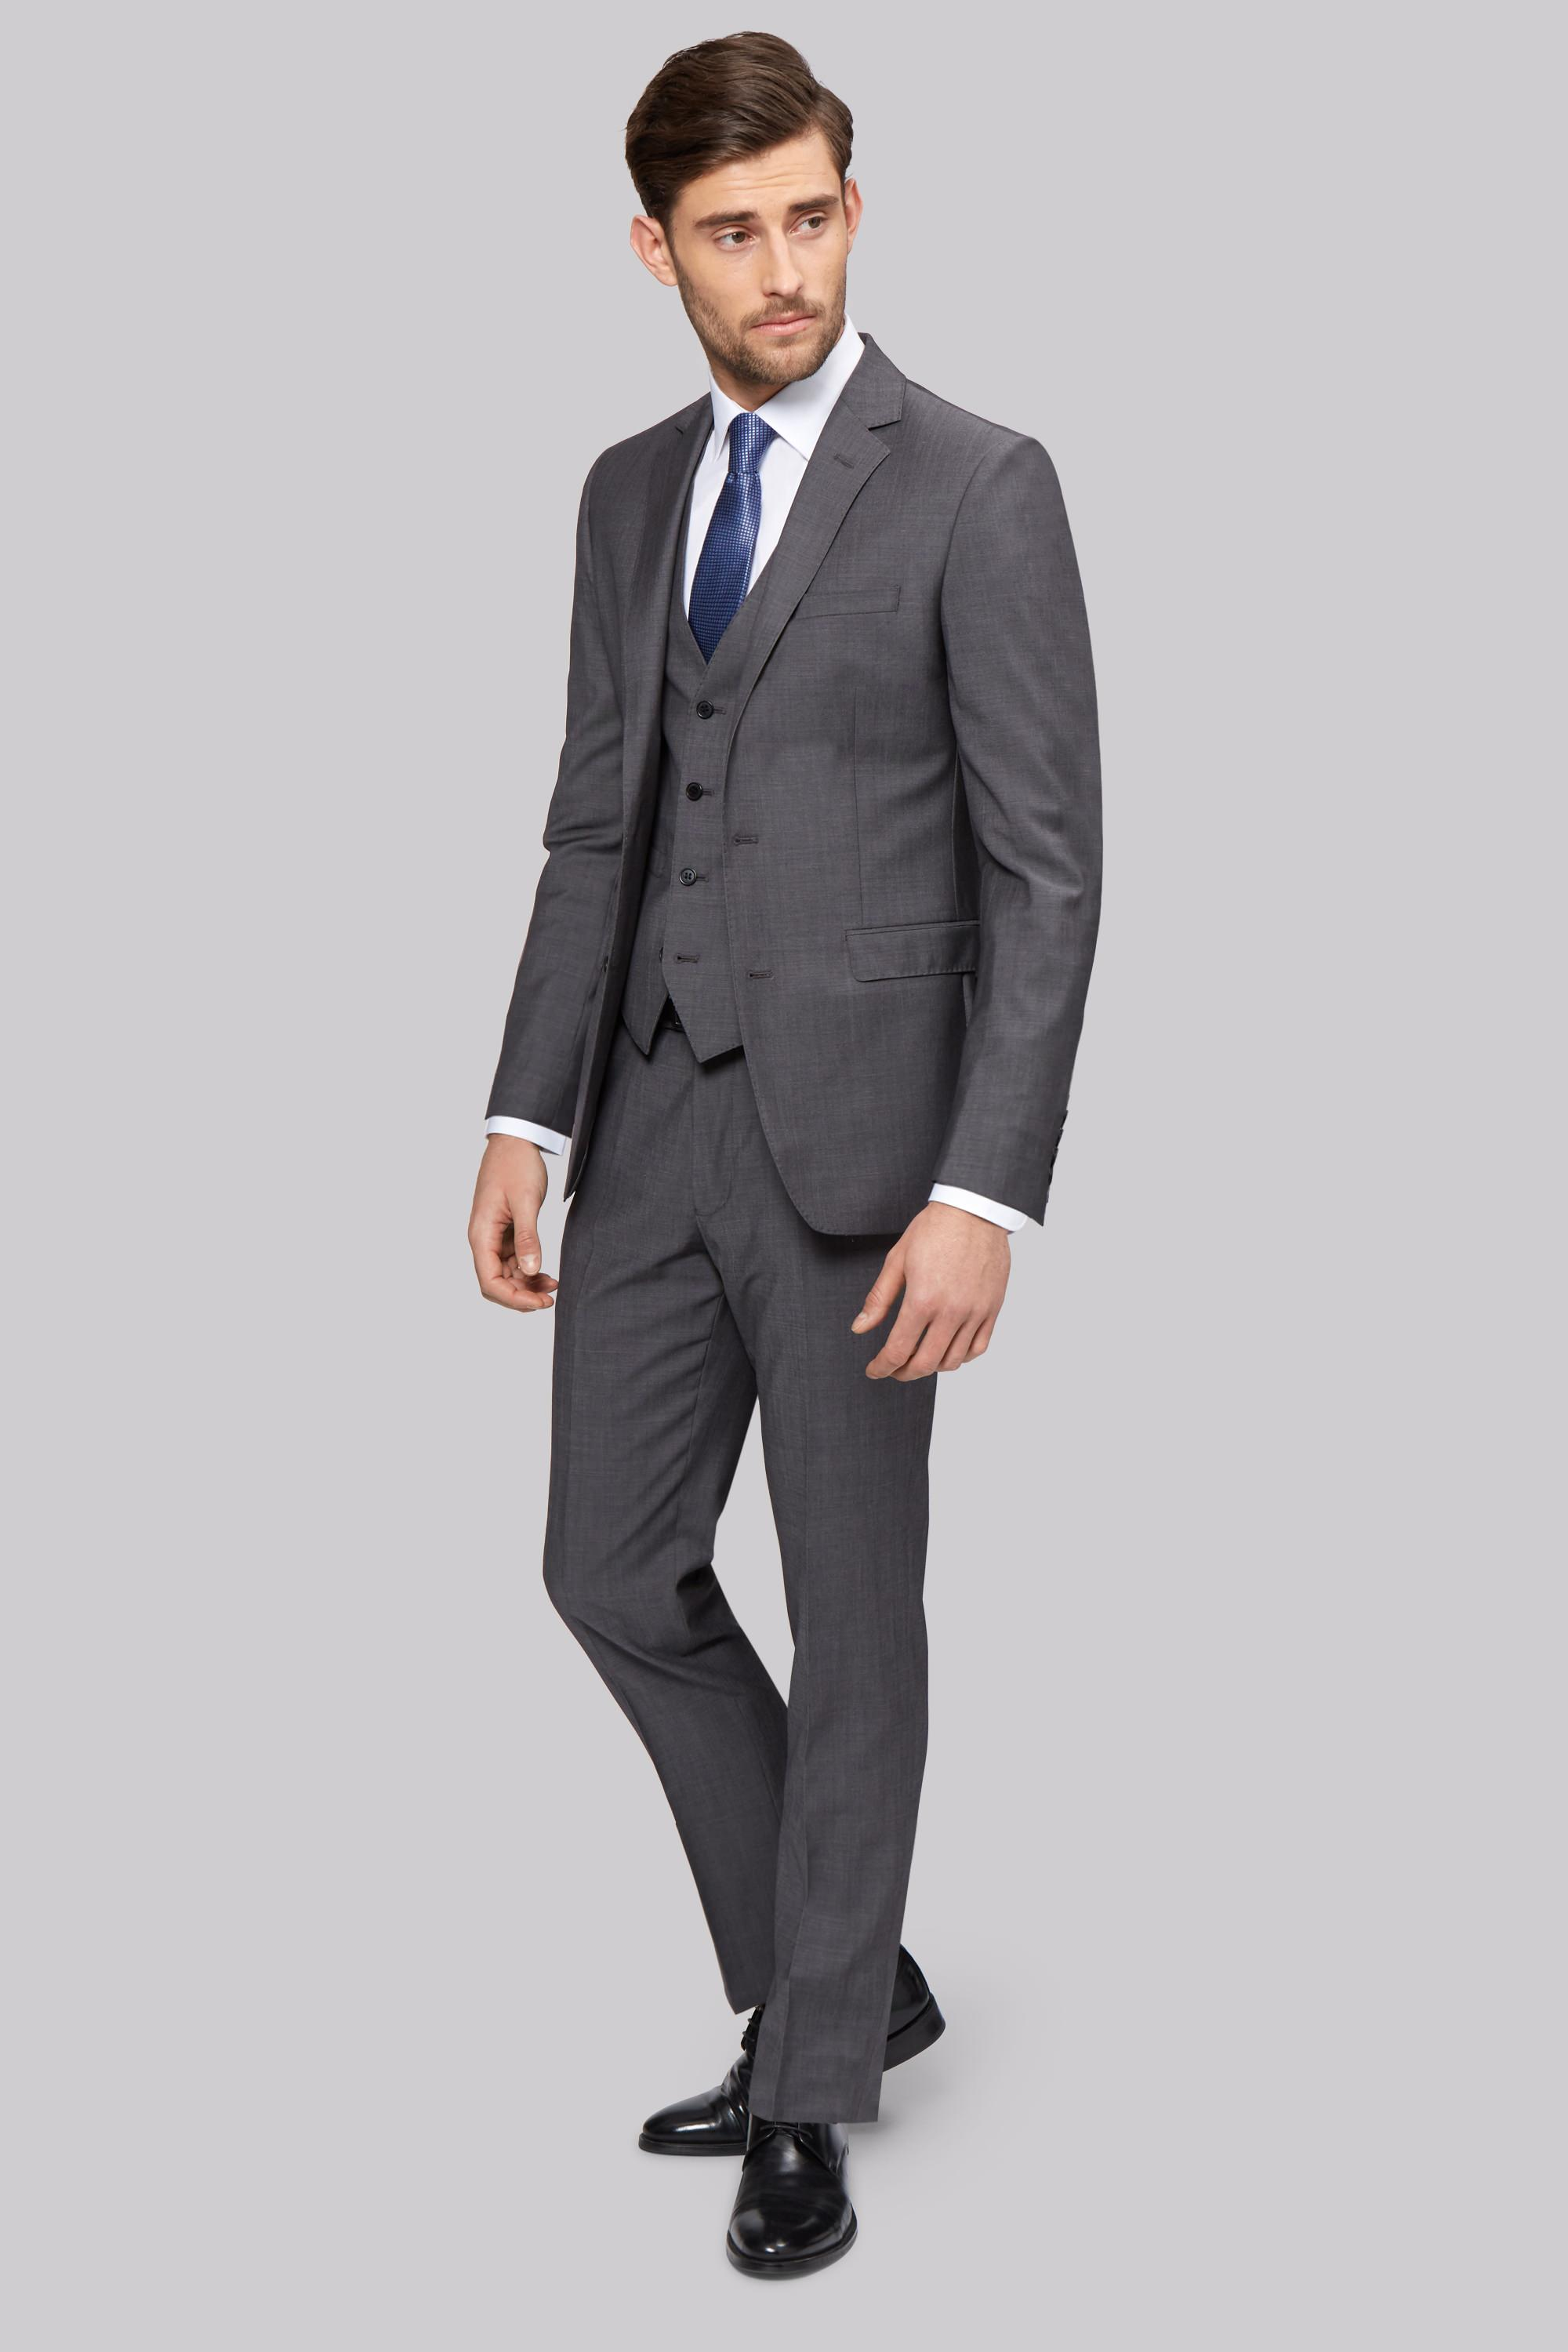 1851 Tailored Fit Grey Tonic Jacket